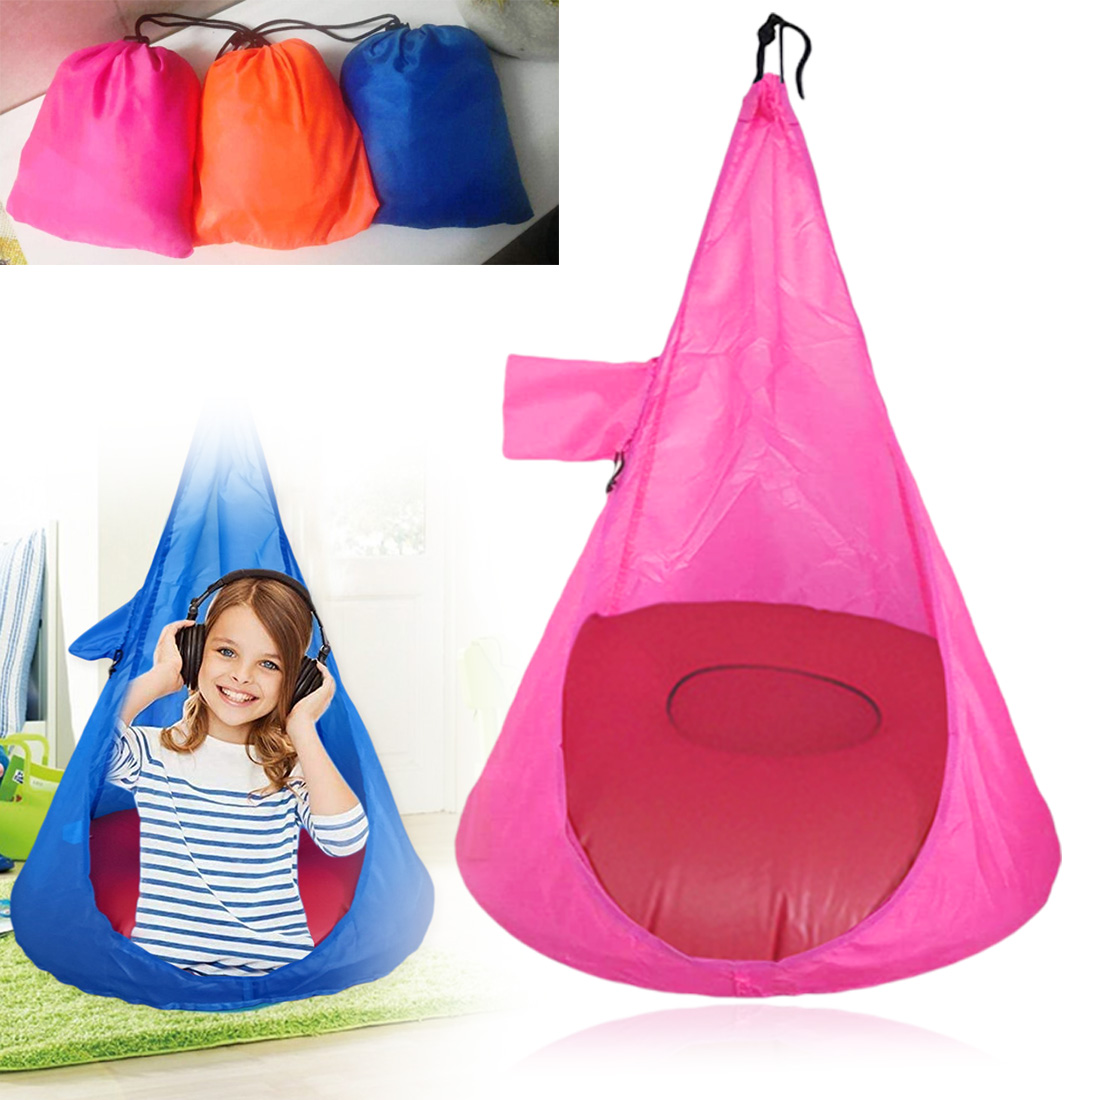 Outdoor Garden Swing Chair Hammock Chair Hanging Chair Adults Kids Polyester Hammock Hanging Rope Chair Swing Bed Camping